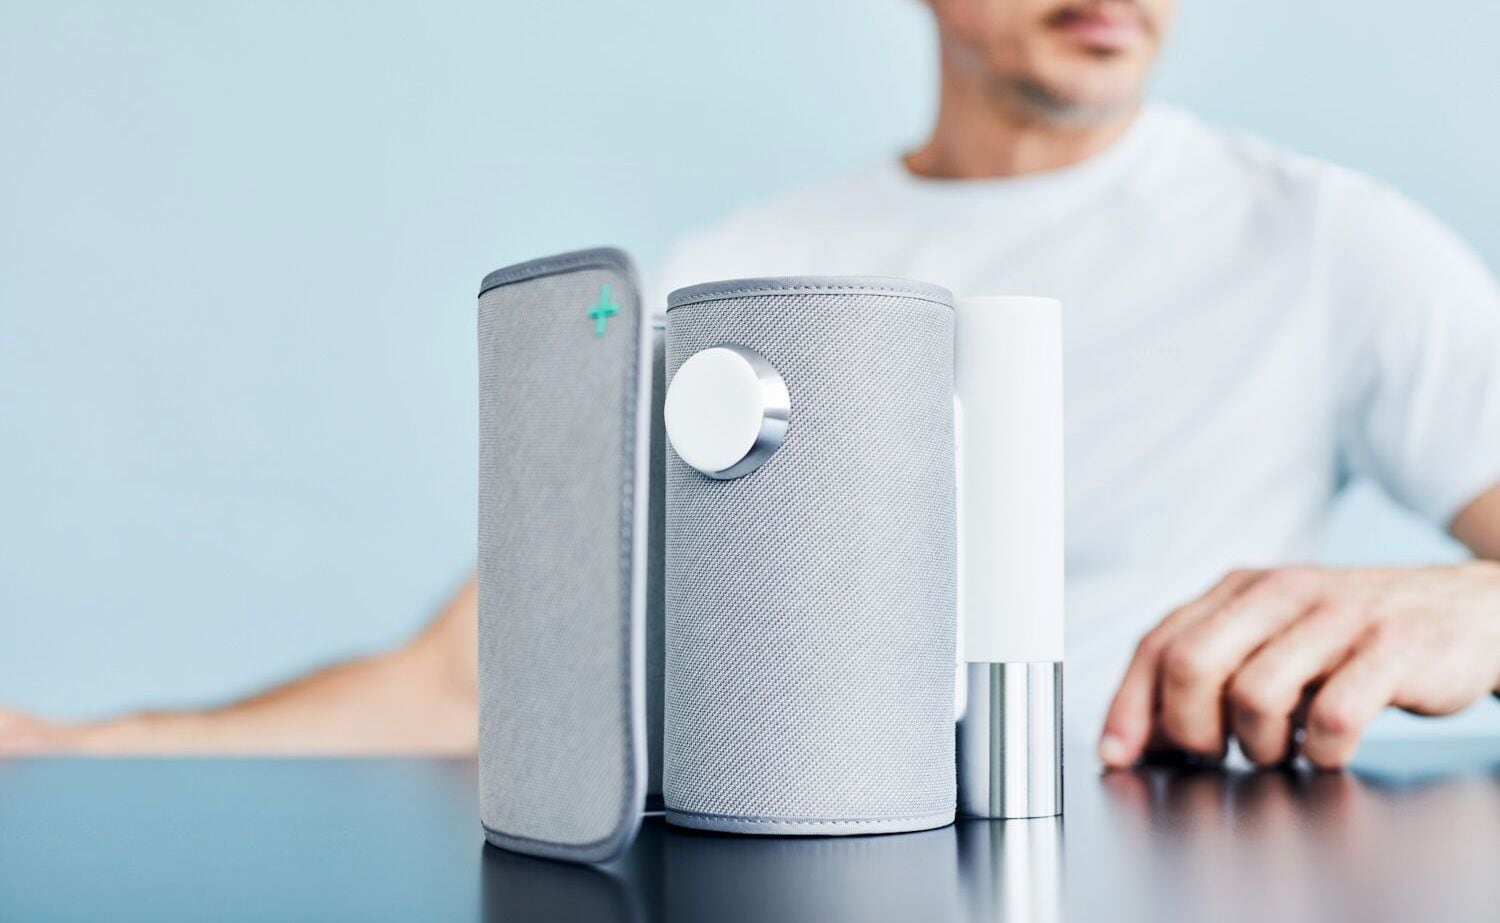 Withings BPM Connect Smart Blood Pressure Monitor gives you control over your blood pressure